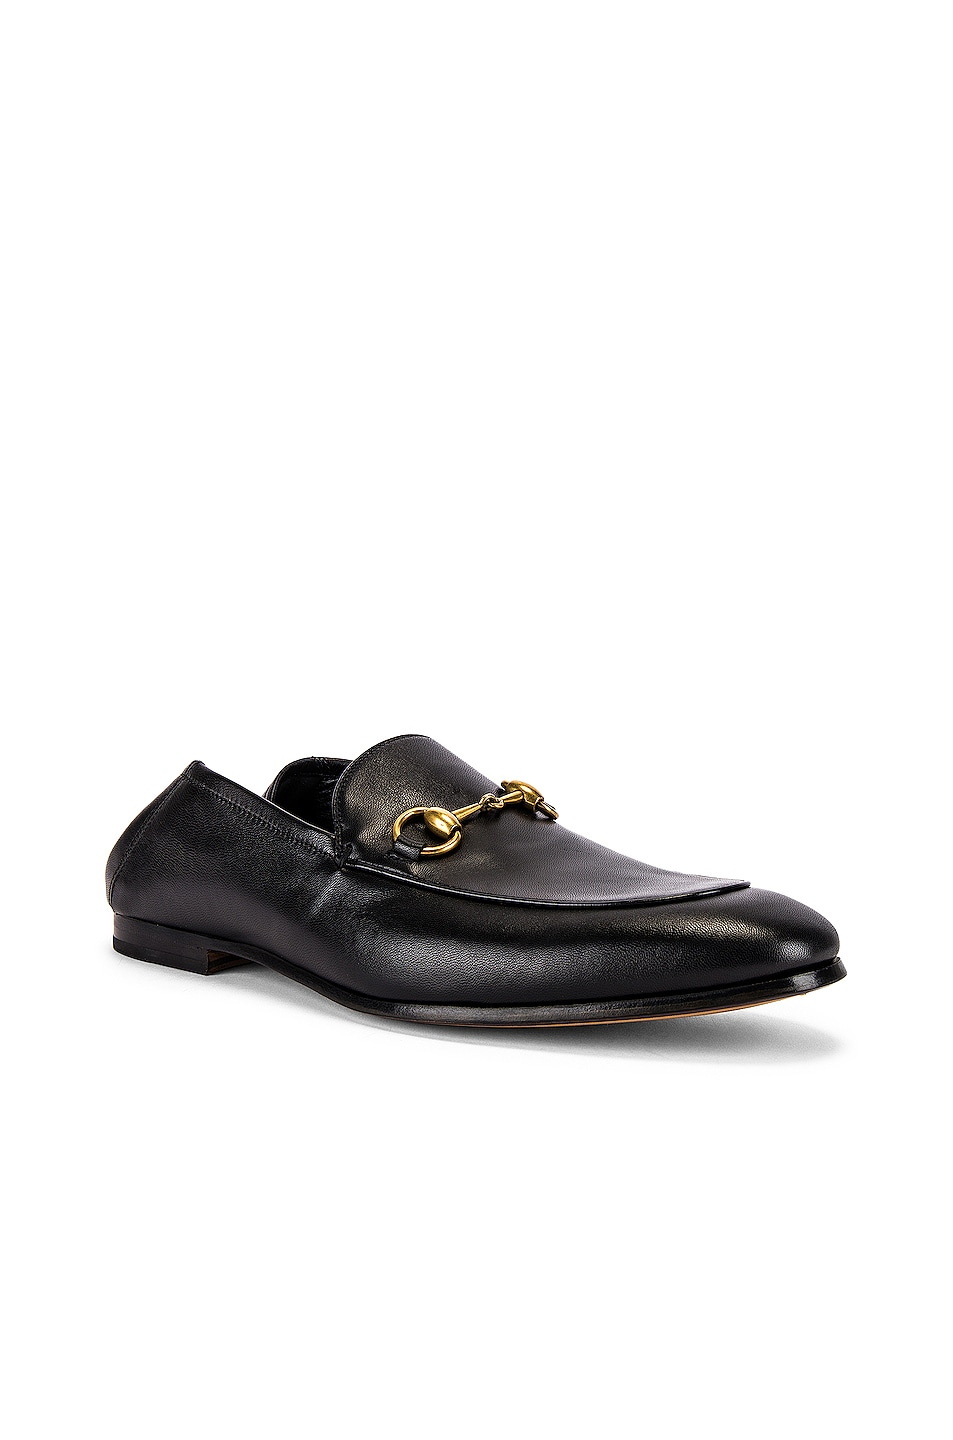 Image 1 of Gucci Ultrapace Loafer in Nero